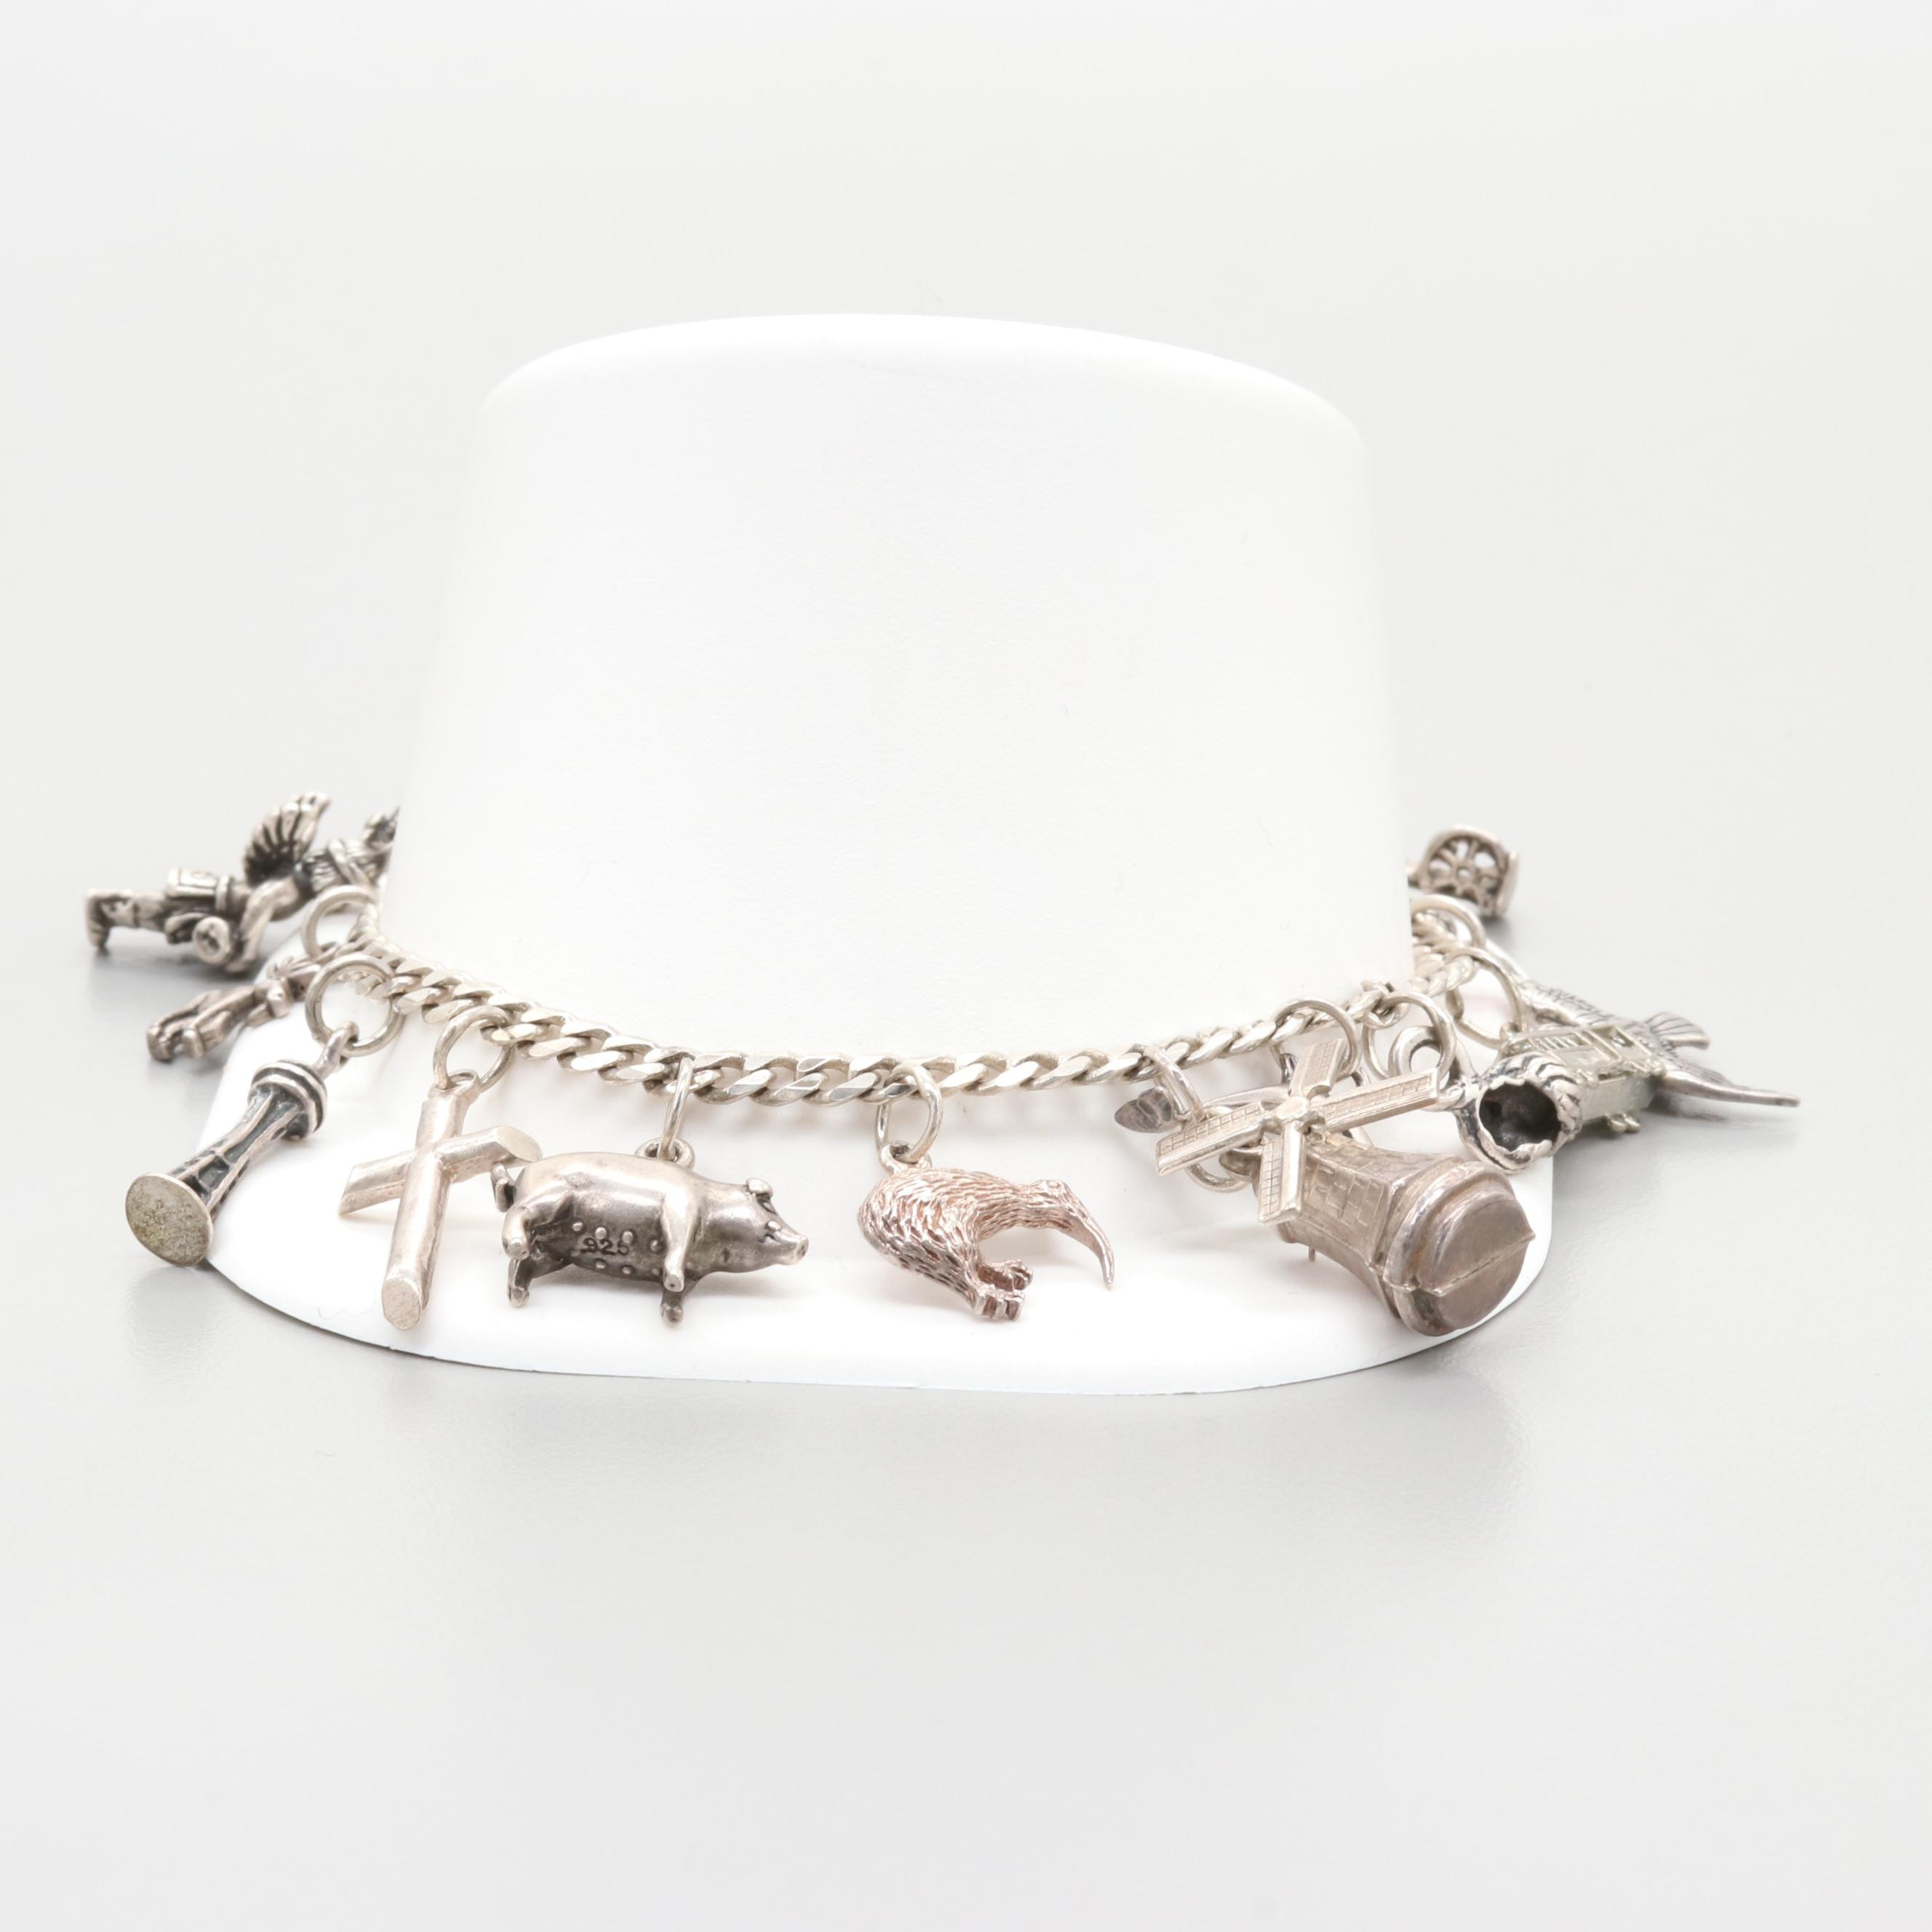 Sterling Silver Charm Bracelet with Nature and Travel Theme